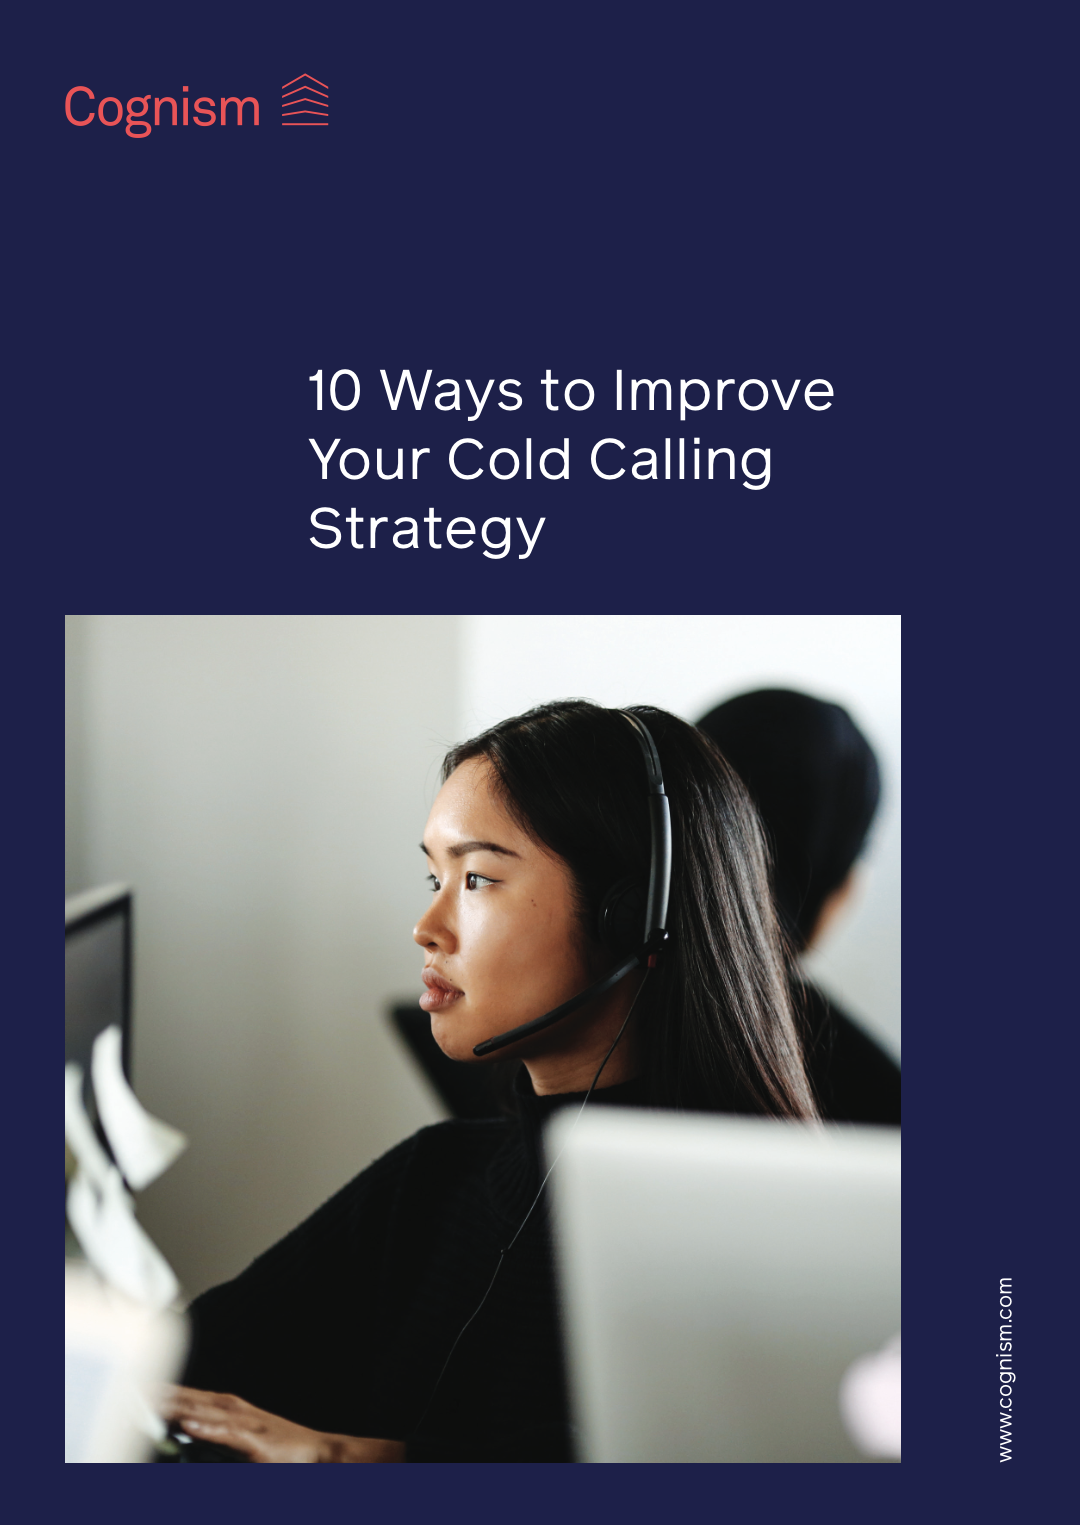 10 Ways to Improve Your Cold Calling Strategy